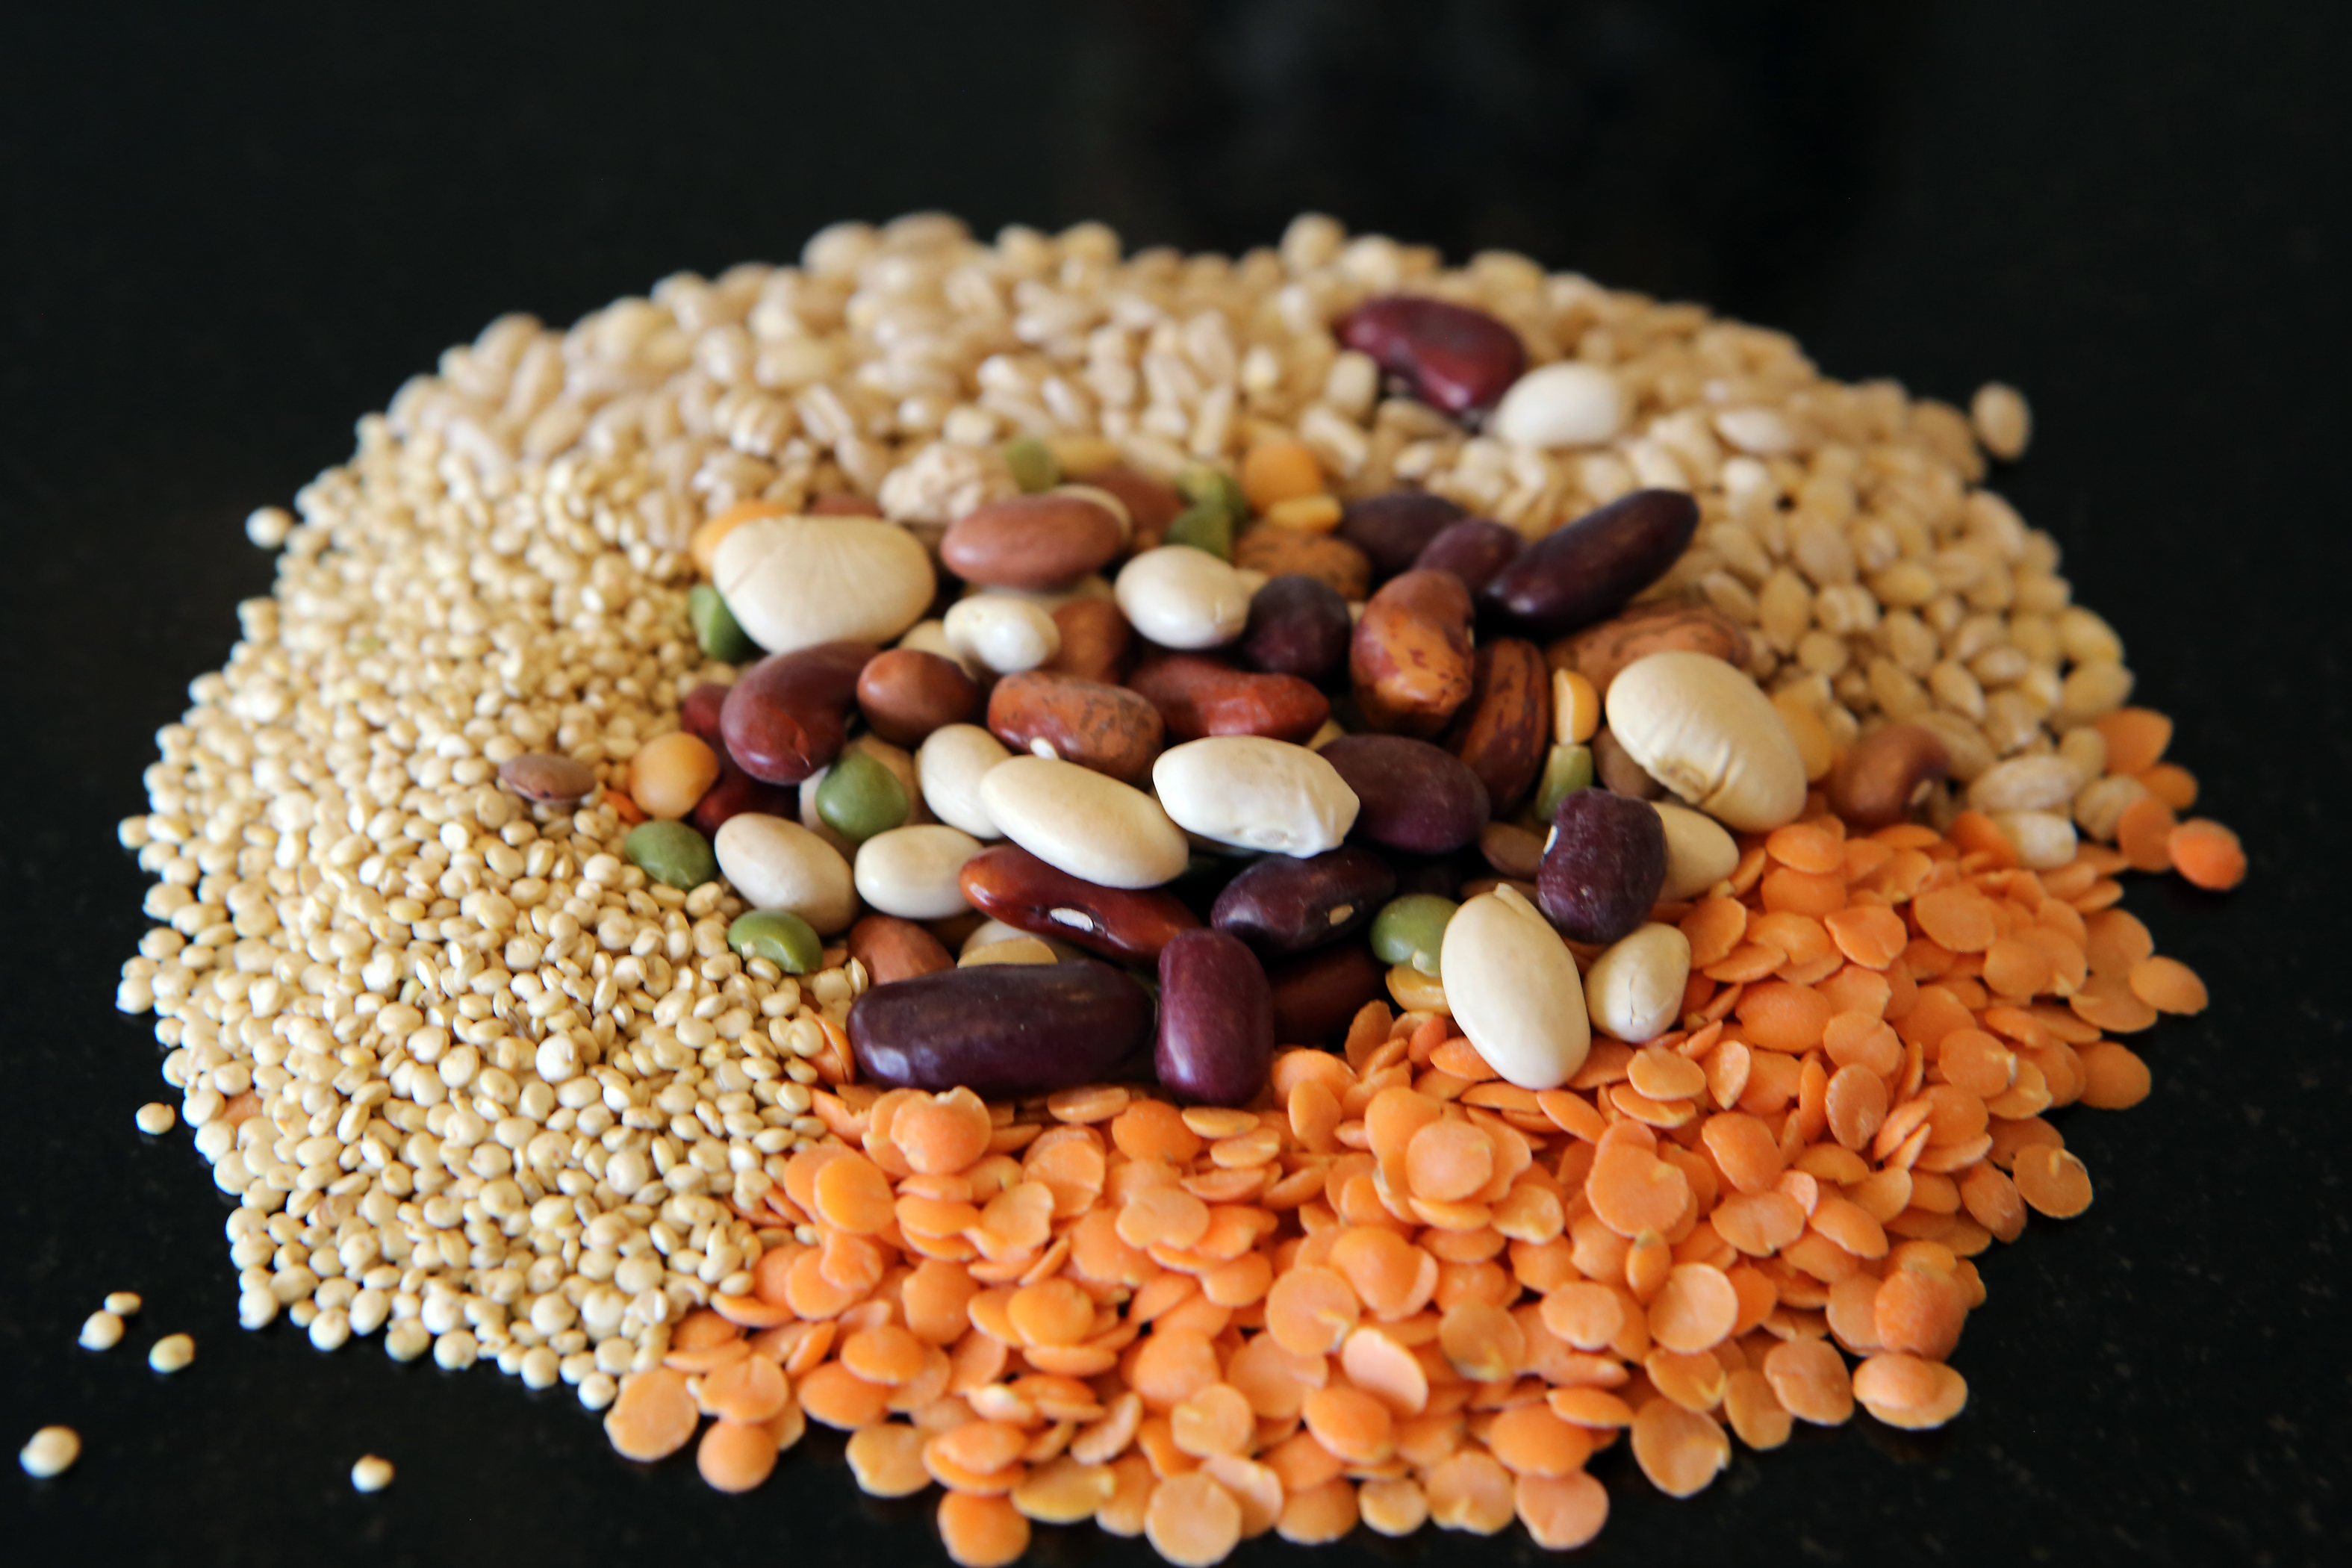 UN declares 2016 International Year of Pulses